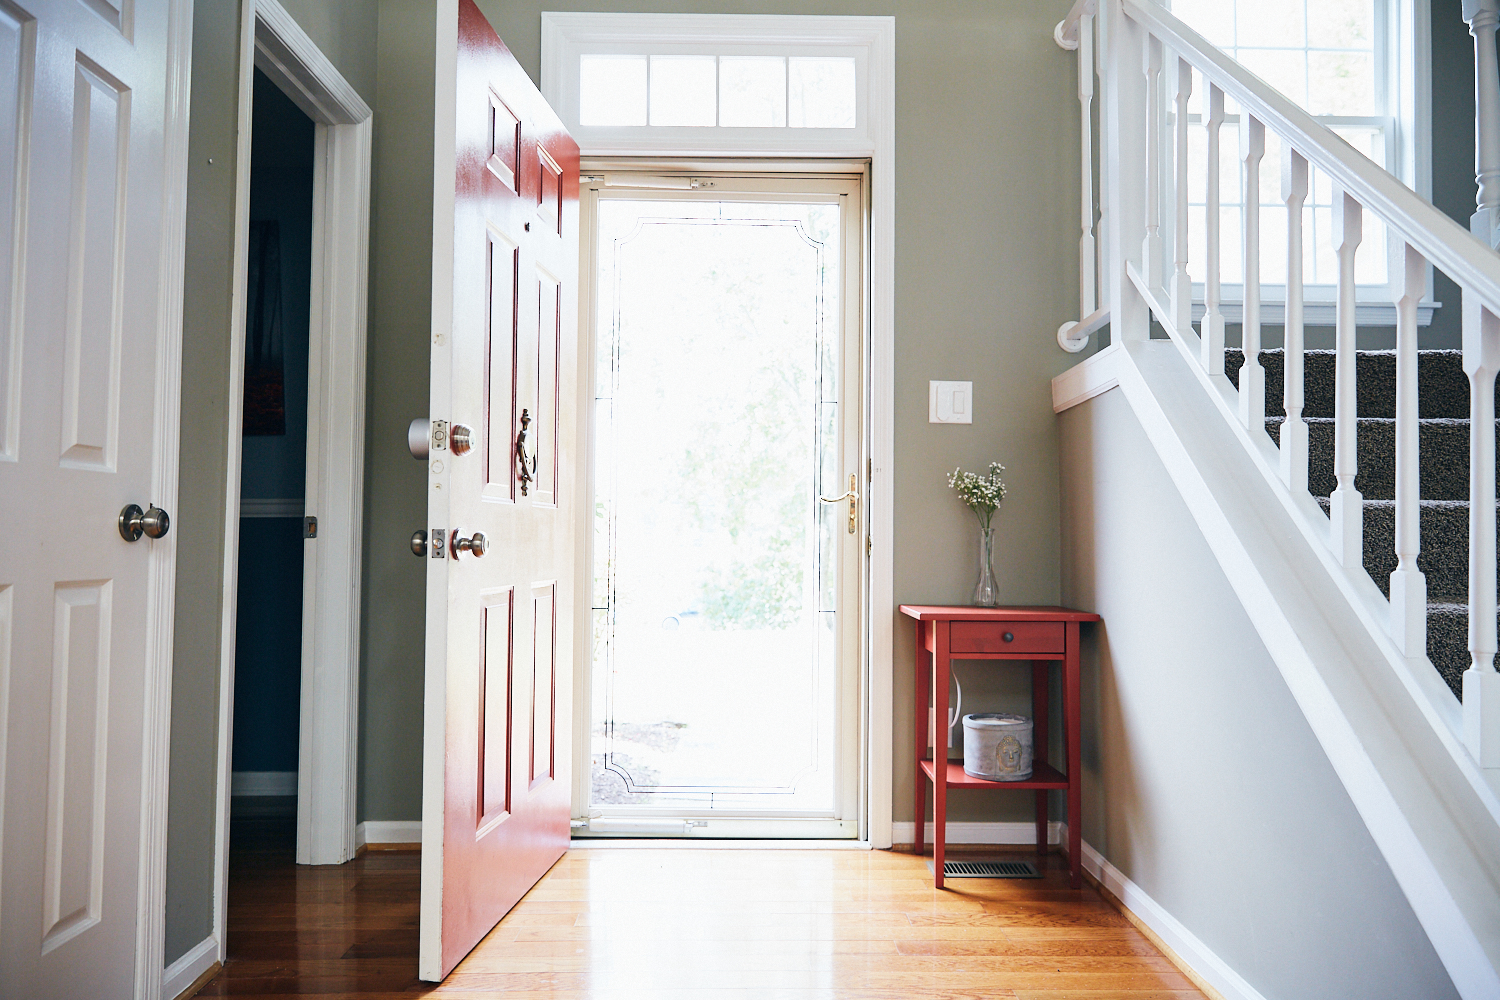 Entryway shot - replace red table with something else or remove